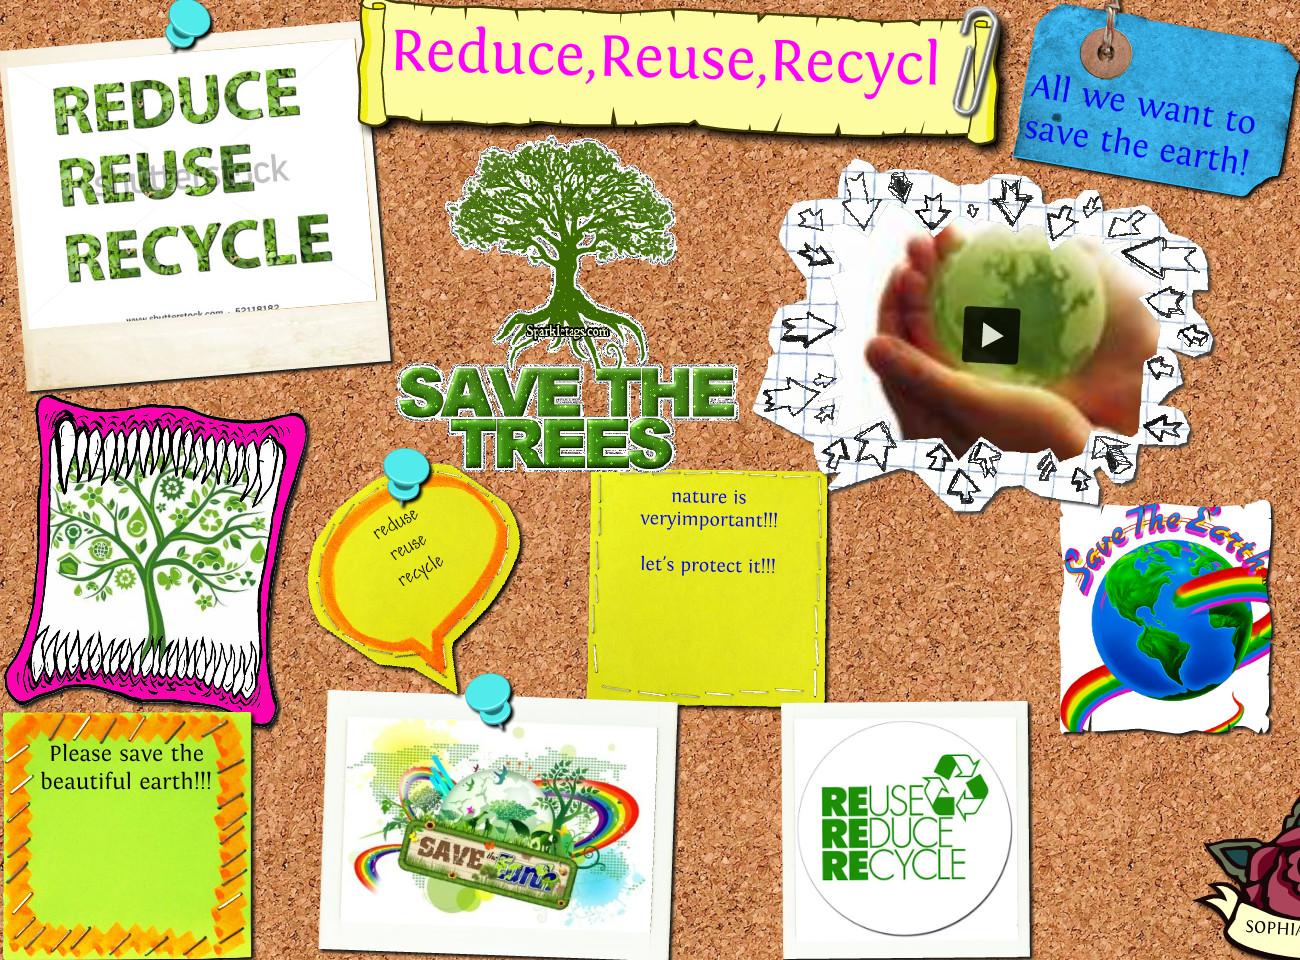 Top 5 Tips To Live Green On Campus